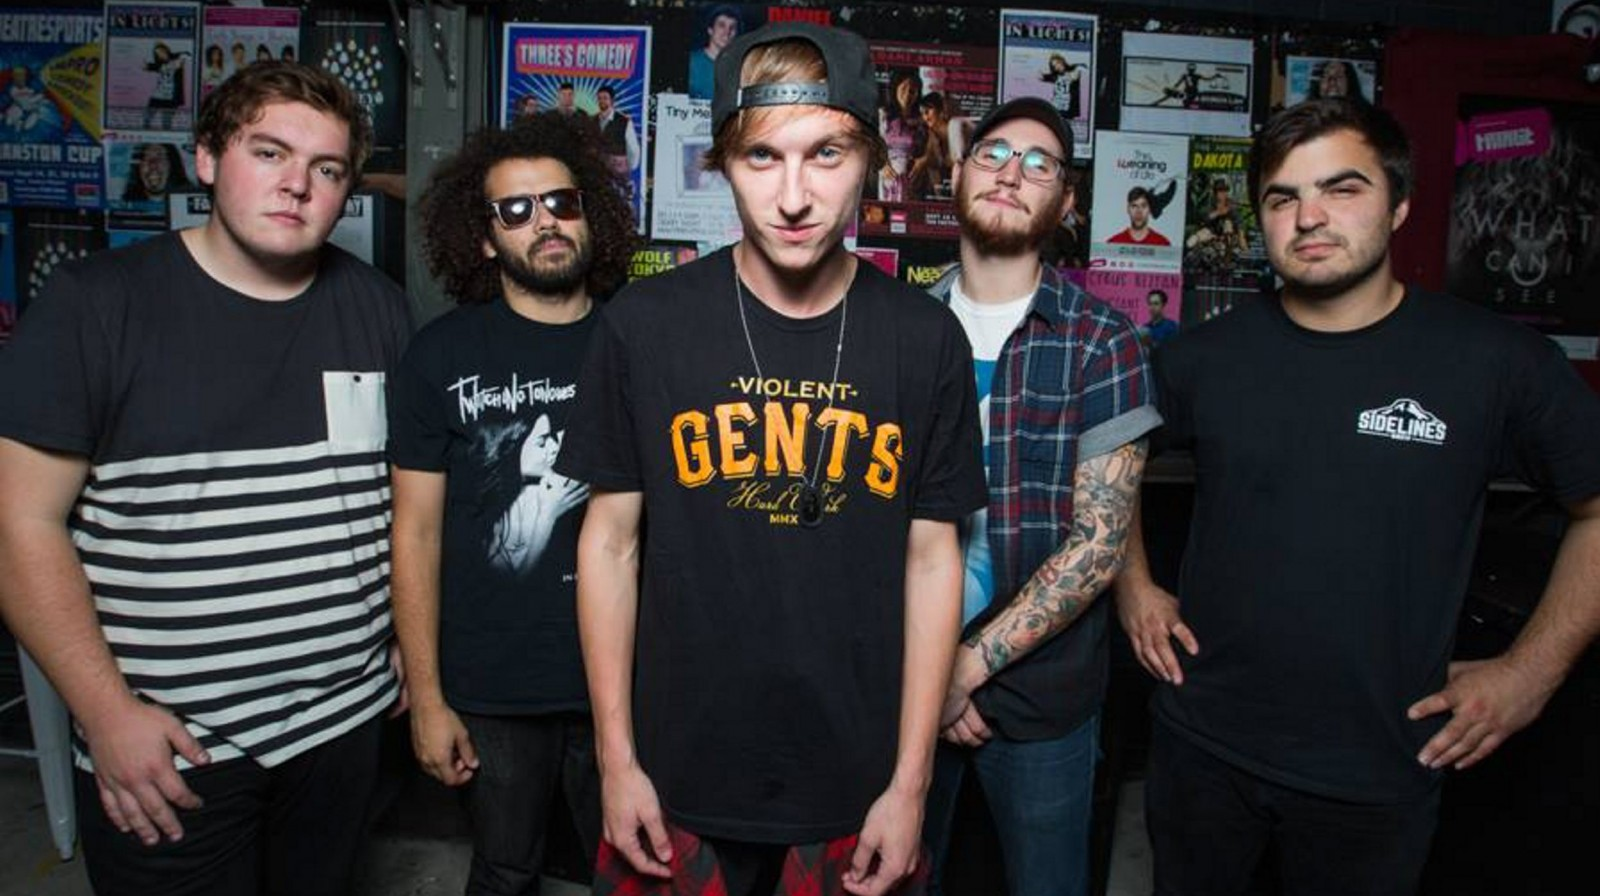 Albany pop-punk band State Champs performs Sunday in the Waiting Room.